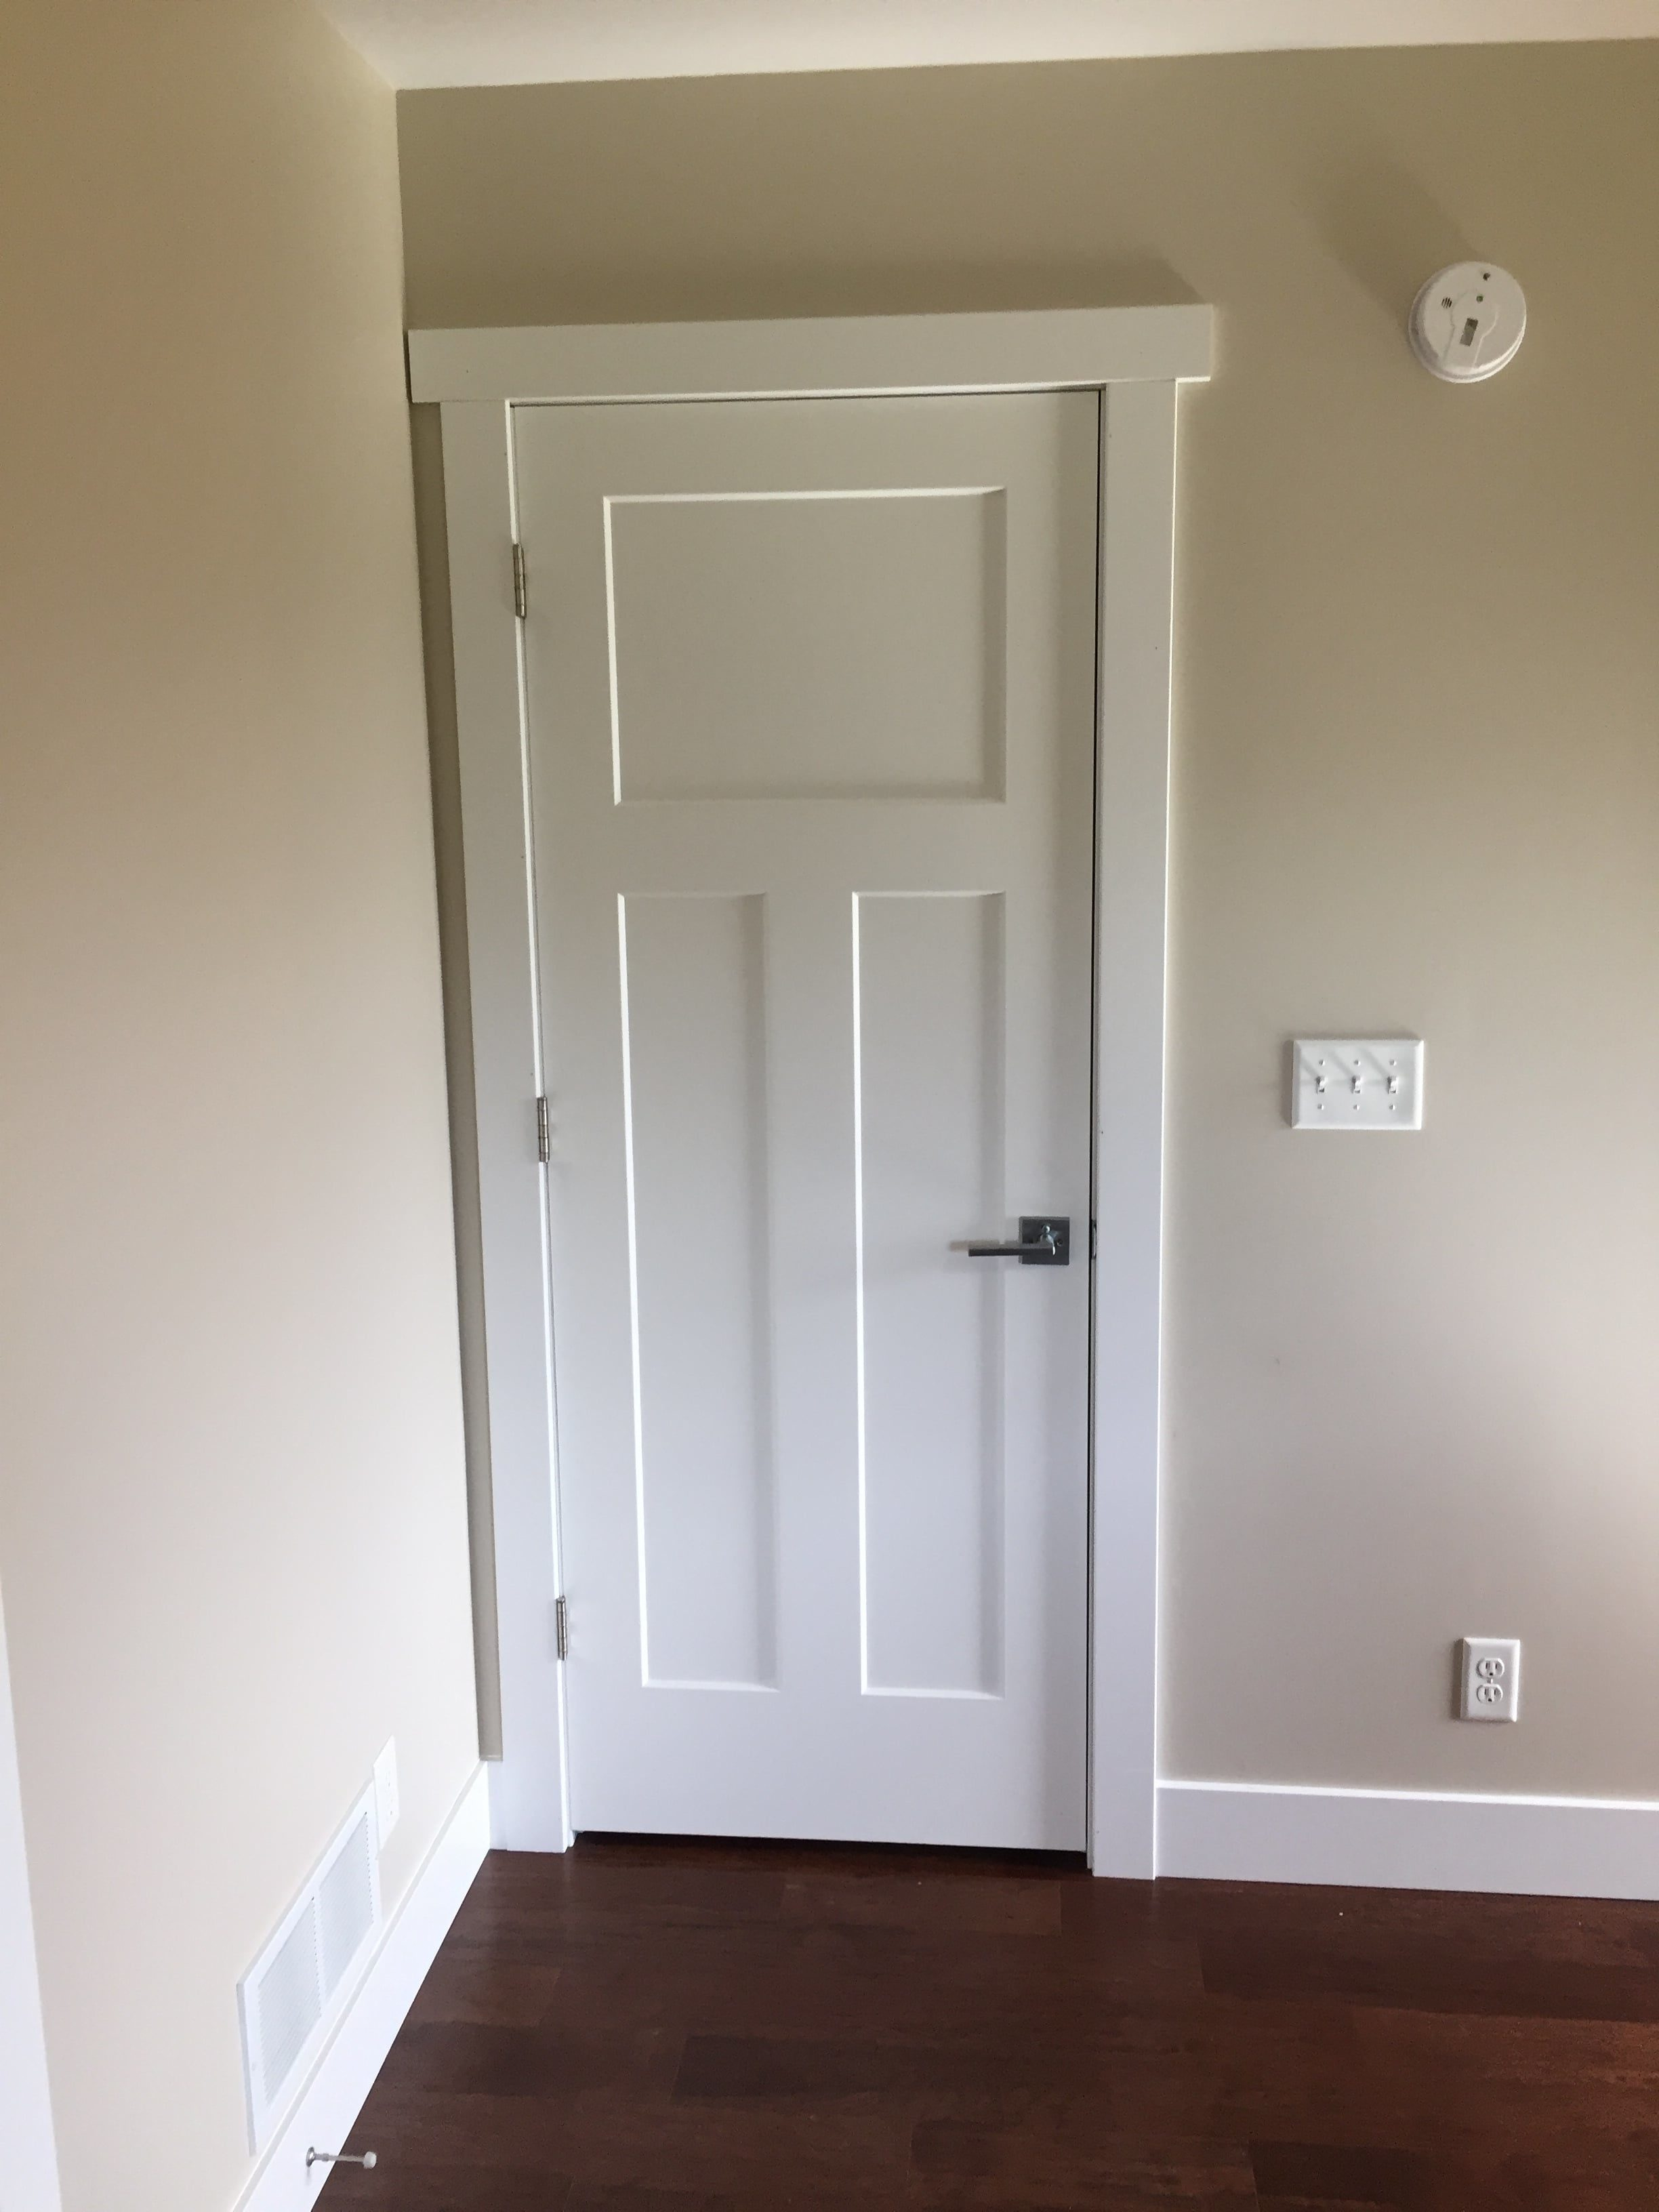 Ordinaire Installing A Pre Hung Door Can Be A Daunting Task For Someone Who Has Never  Installed A Door Before, And Can Still Be Extremely Frustrating For An ...